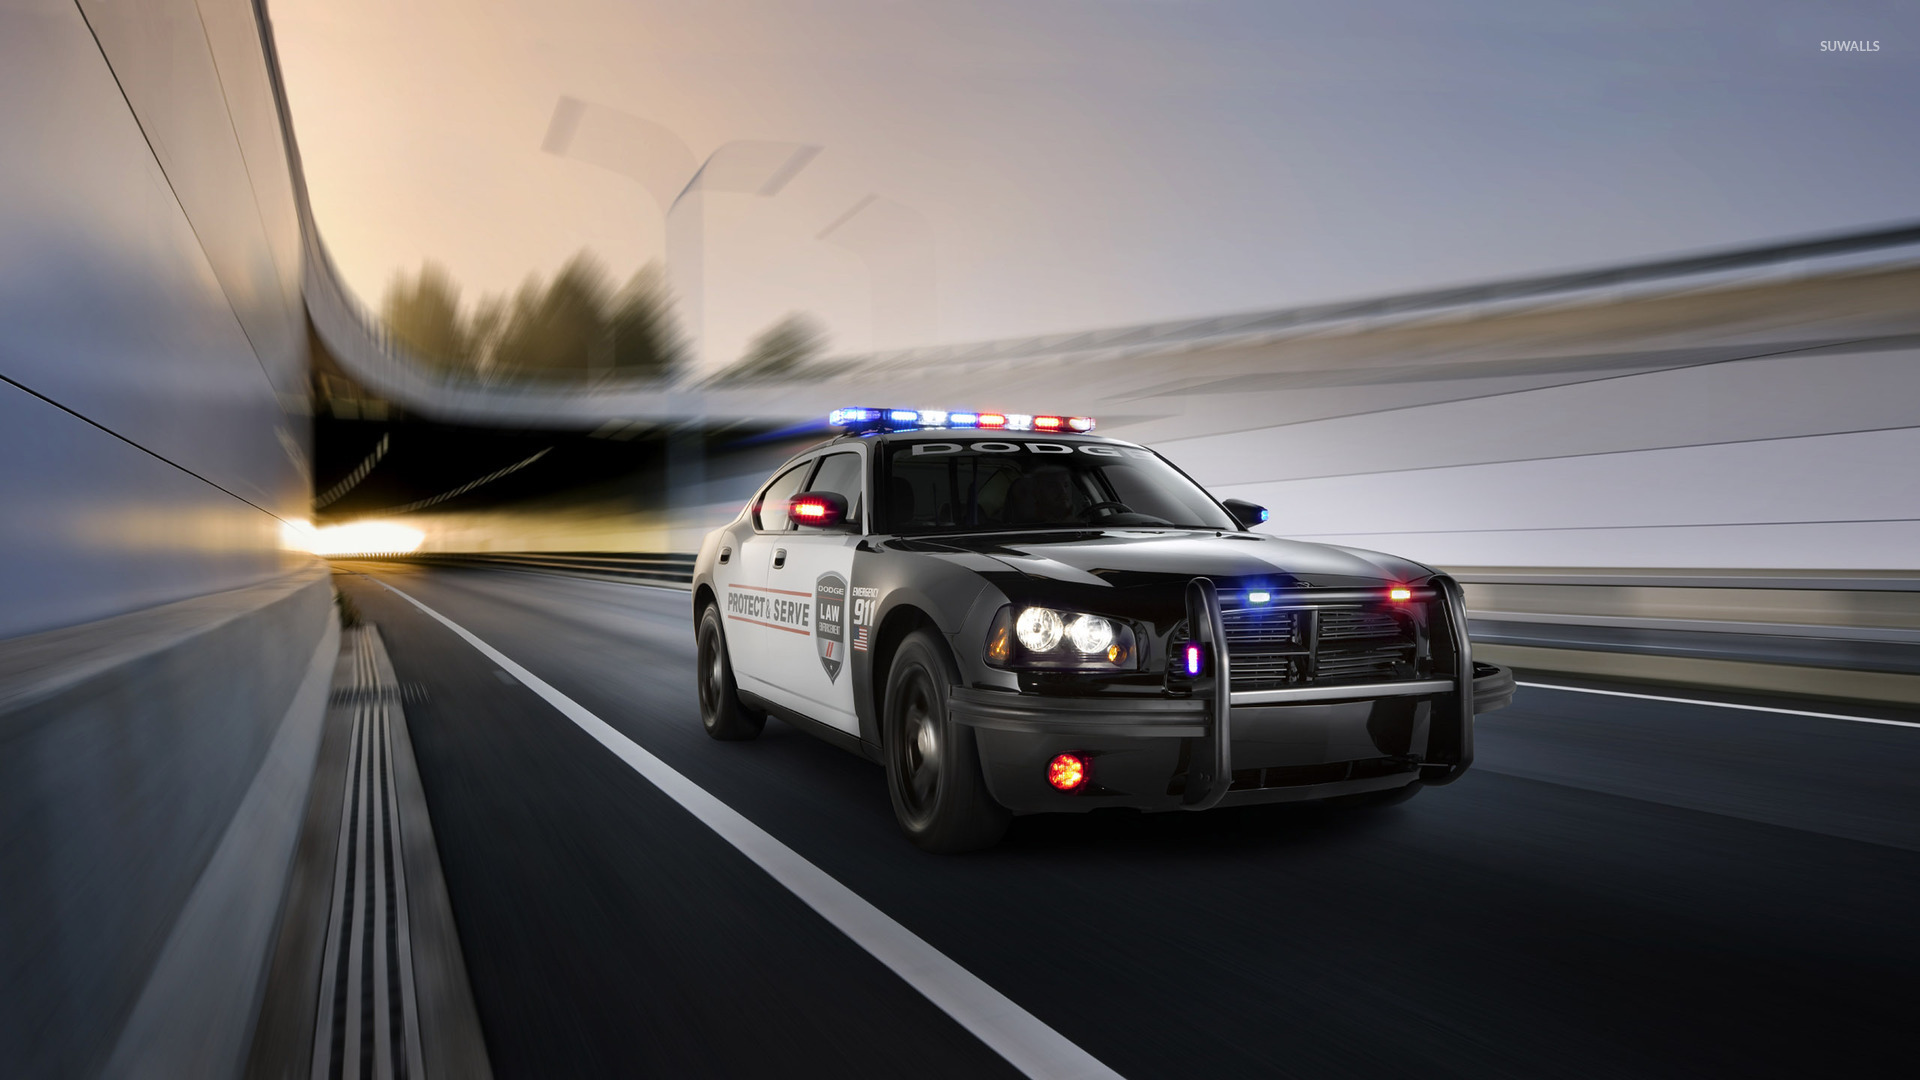 2010 Dodge Charger Police Car Wallpaper Car Wallpapers